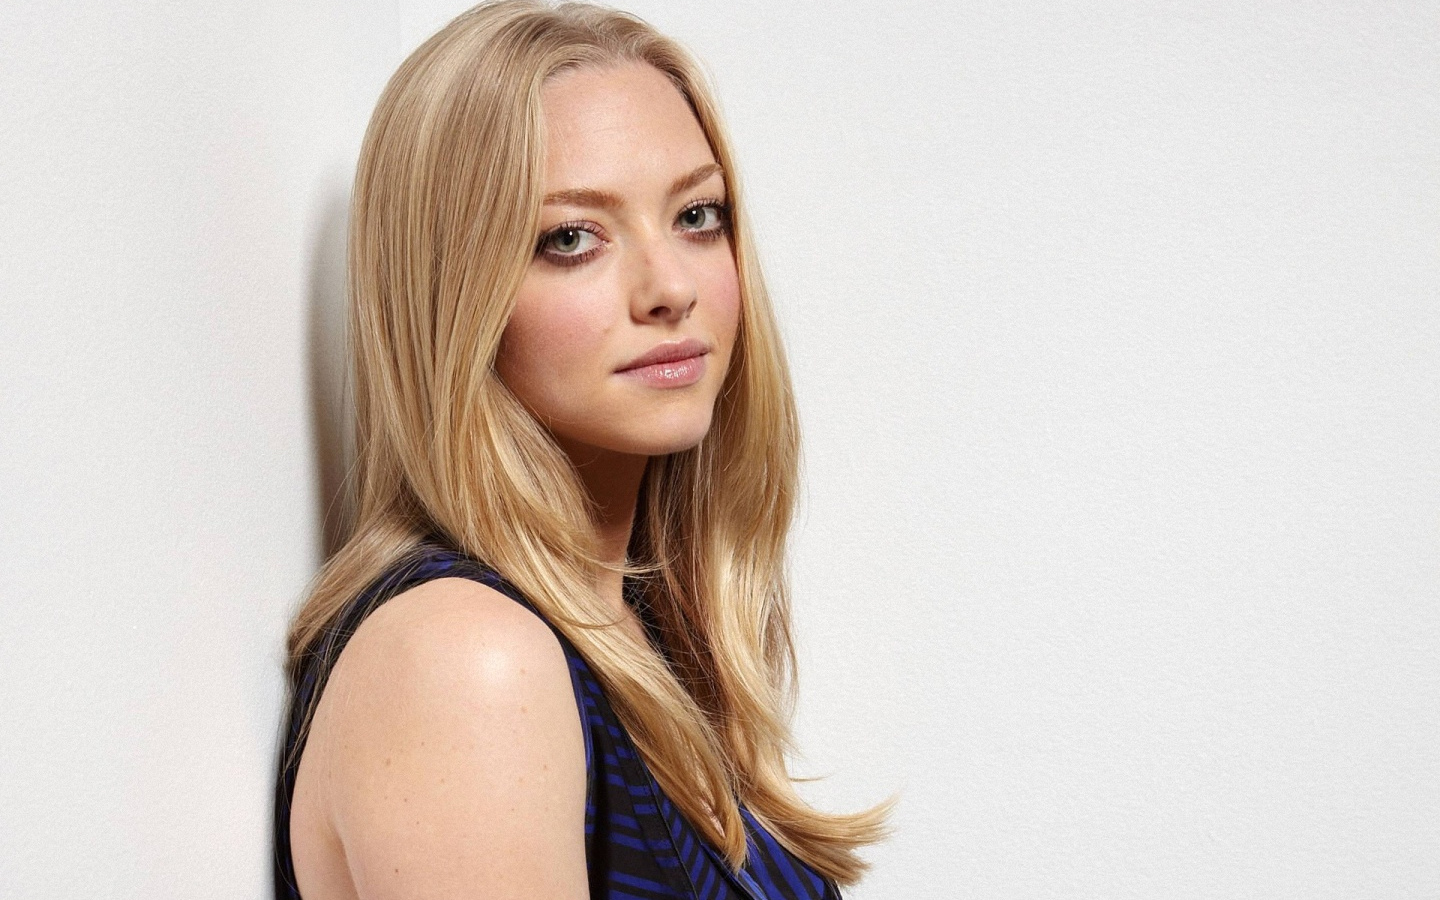 Beautiful Amanda Seyfried Wallpaper